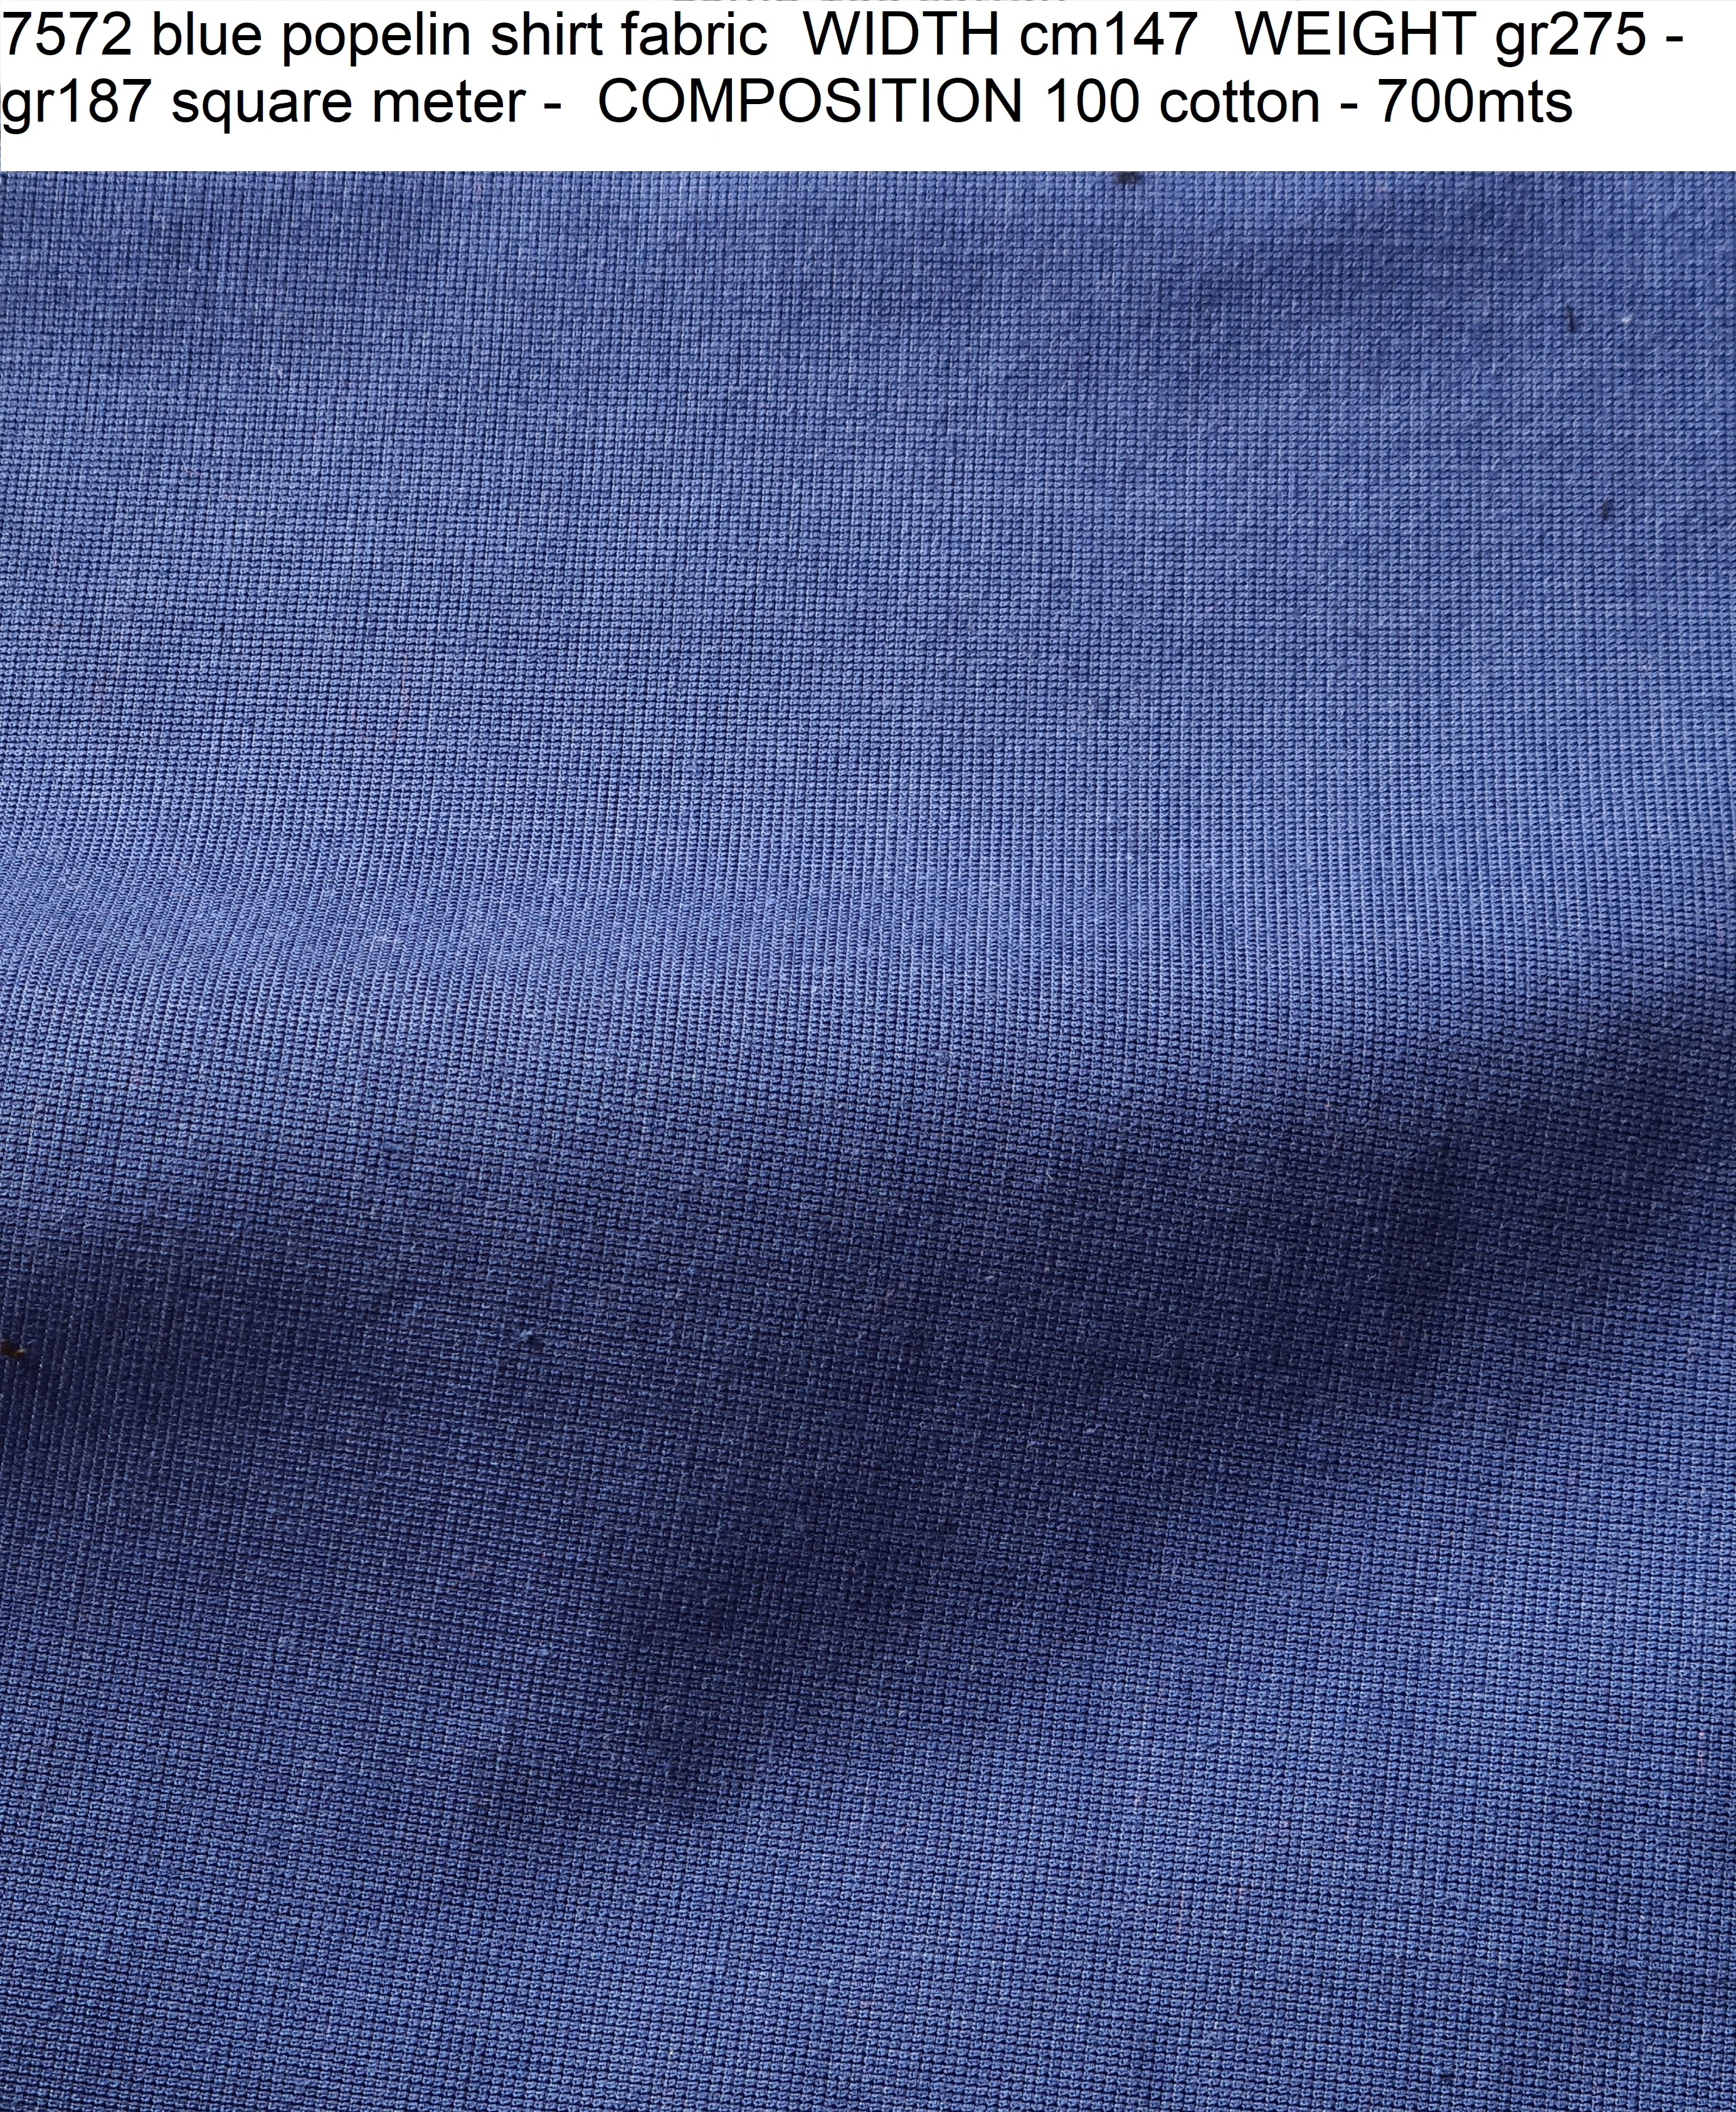 7572 blue popelin shirt fabric WIDTH cm147 WEIGHT gr275 - gr187 square meter - COMPOSITION 100 cotton - 700mts